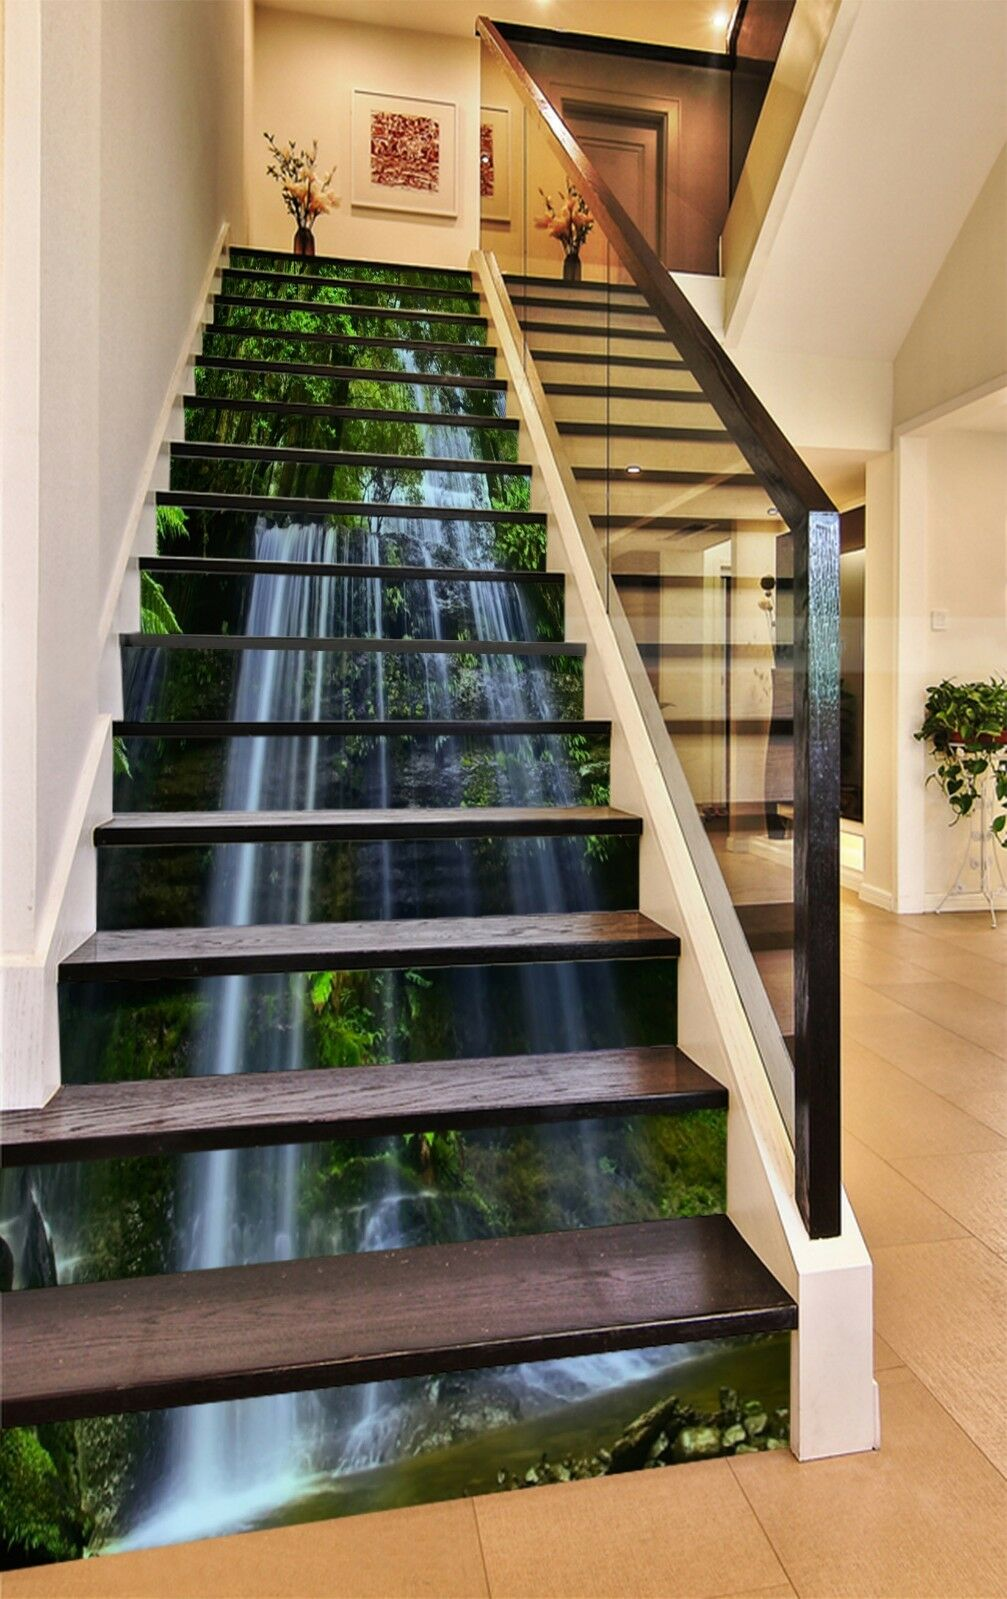 3D Stream Tree 13 Stair Risers Decoration Photo Mural Vinyl Decal Wallpaper CA